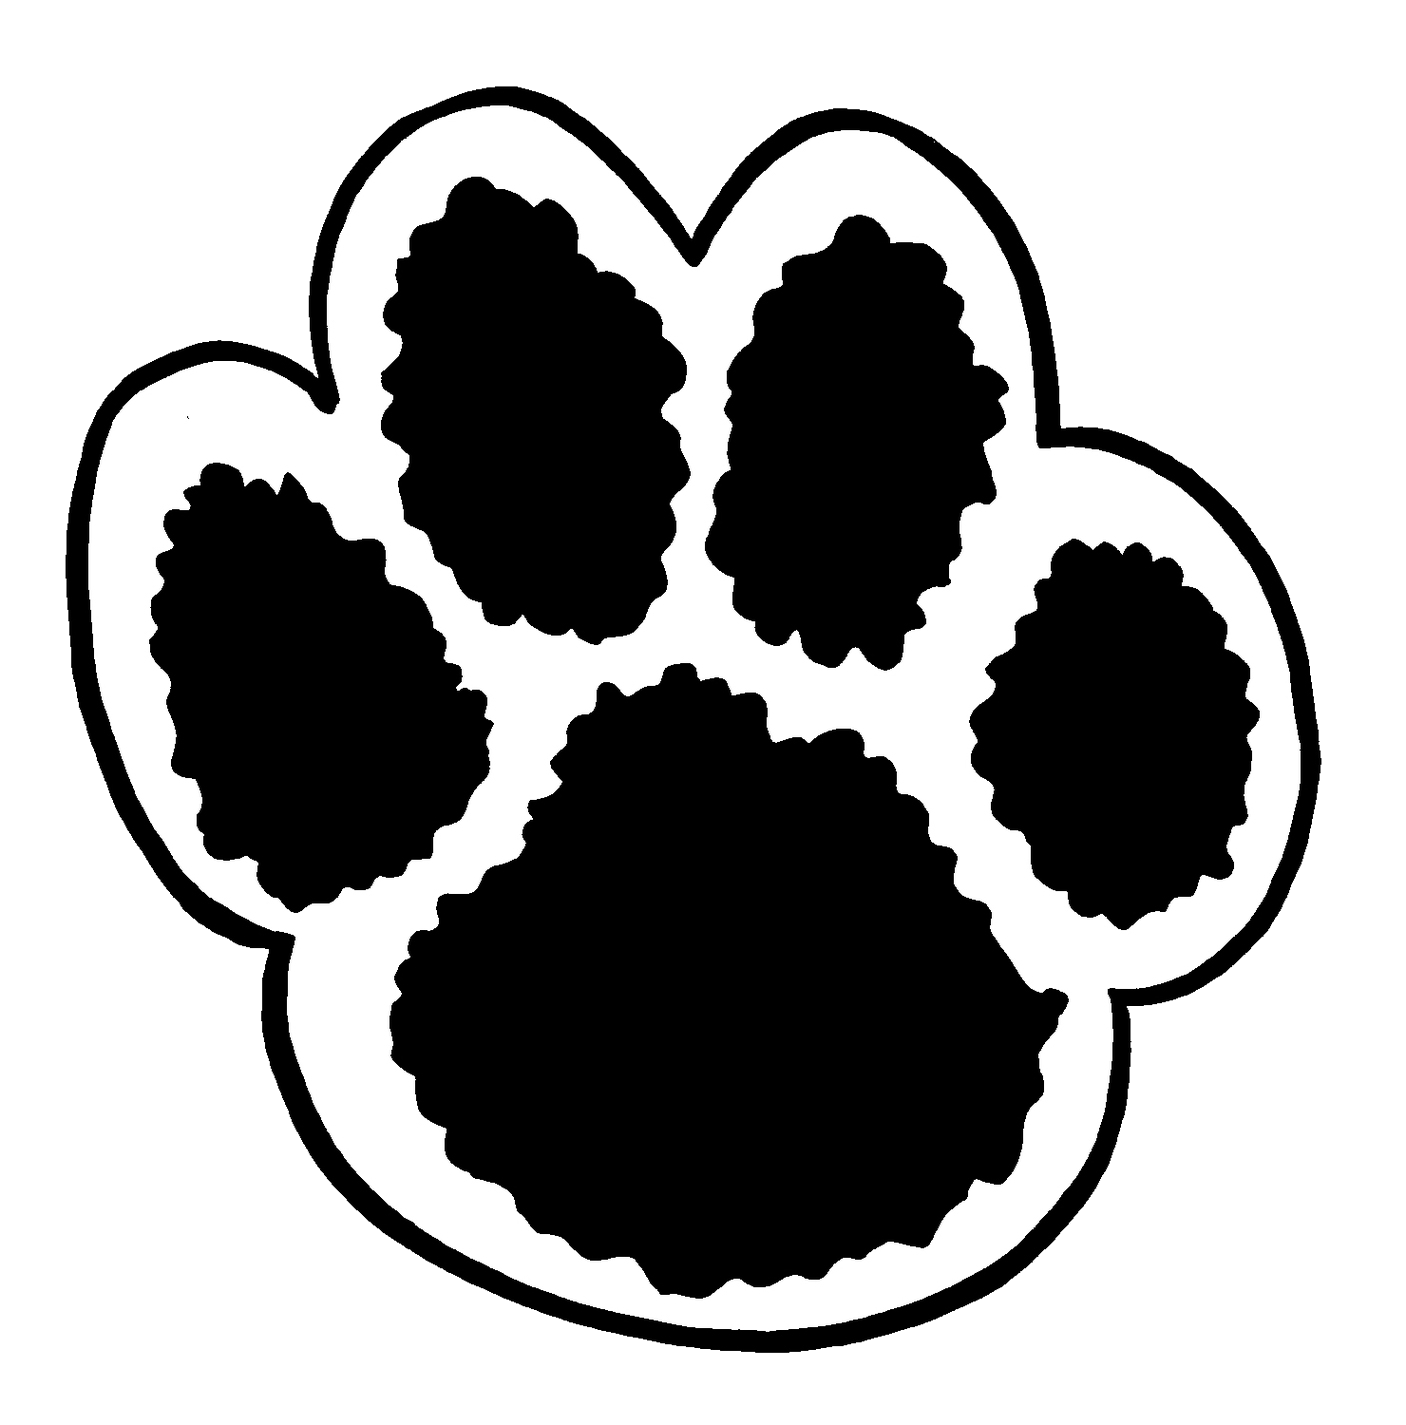 Paw Print Clip Art In Black And White Transparent Png.